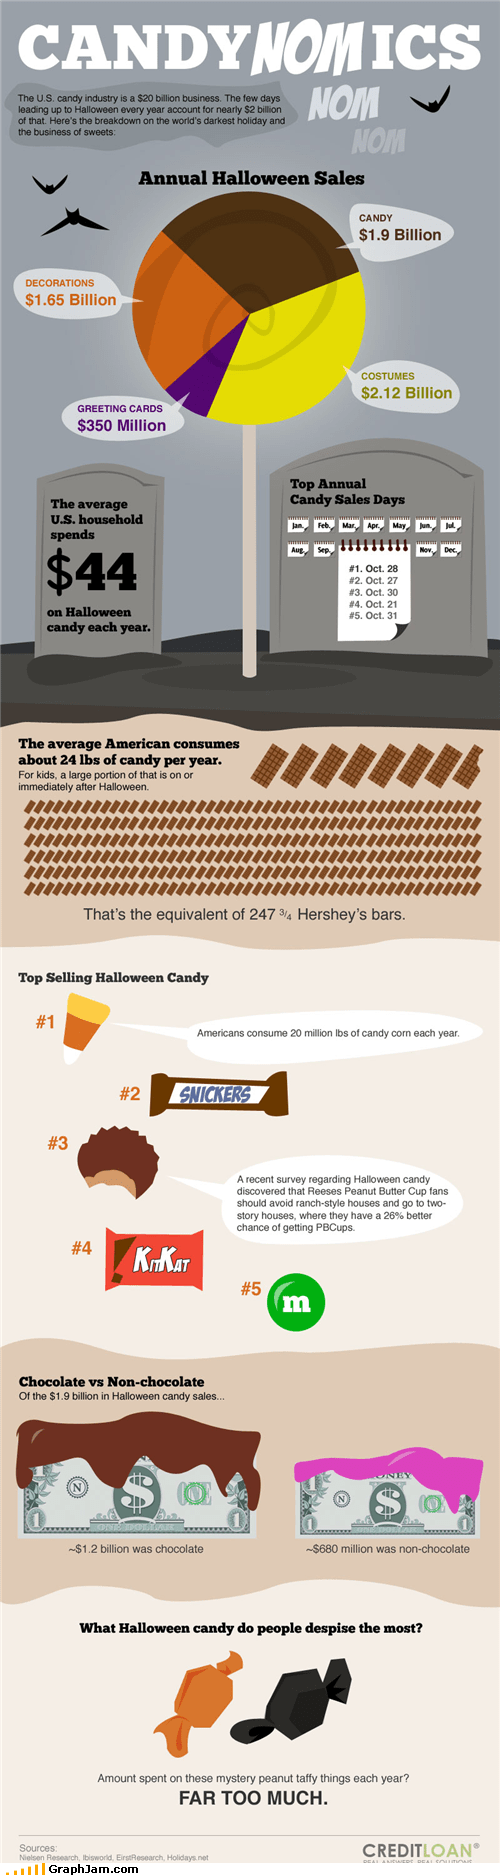 candy chocolate halloween infographic